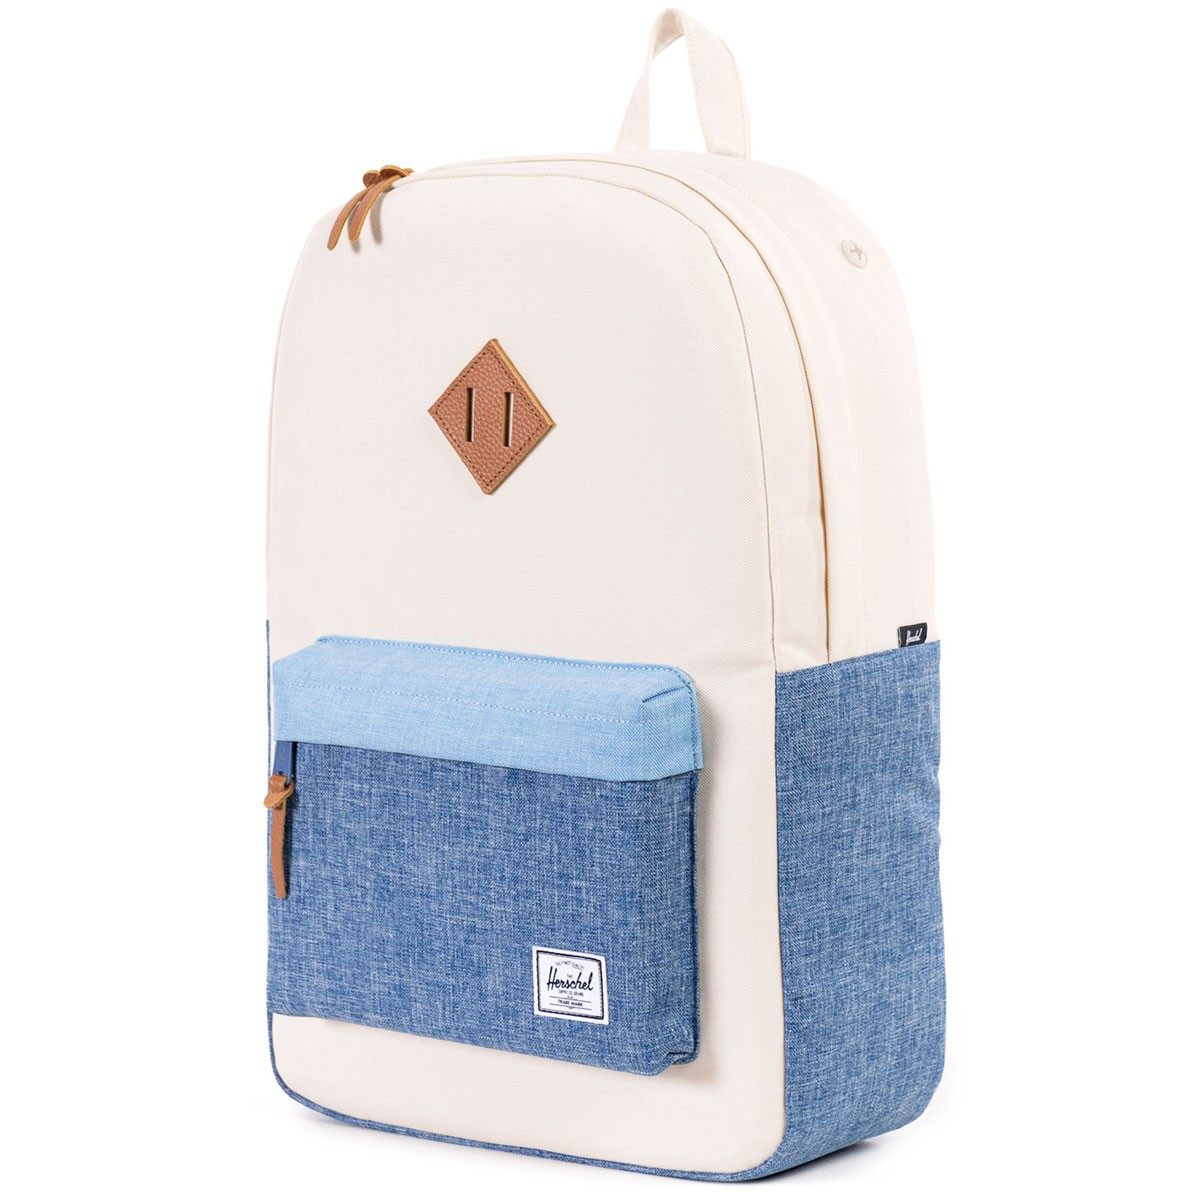 Herschel Heritage Backpack - Natural/Chambray/Limogess/Tan Leather